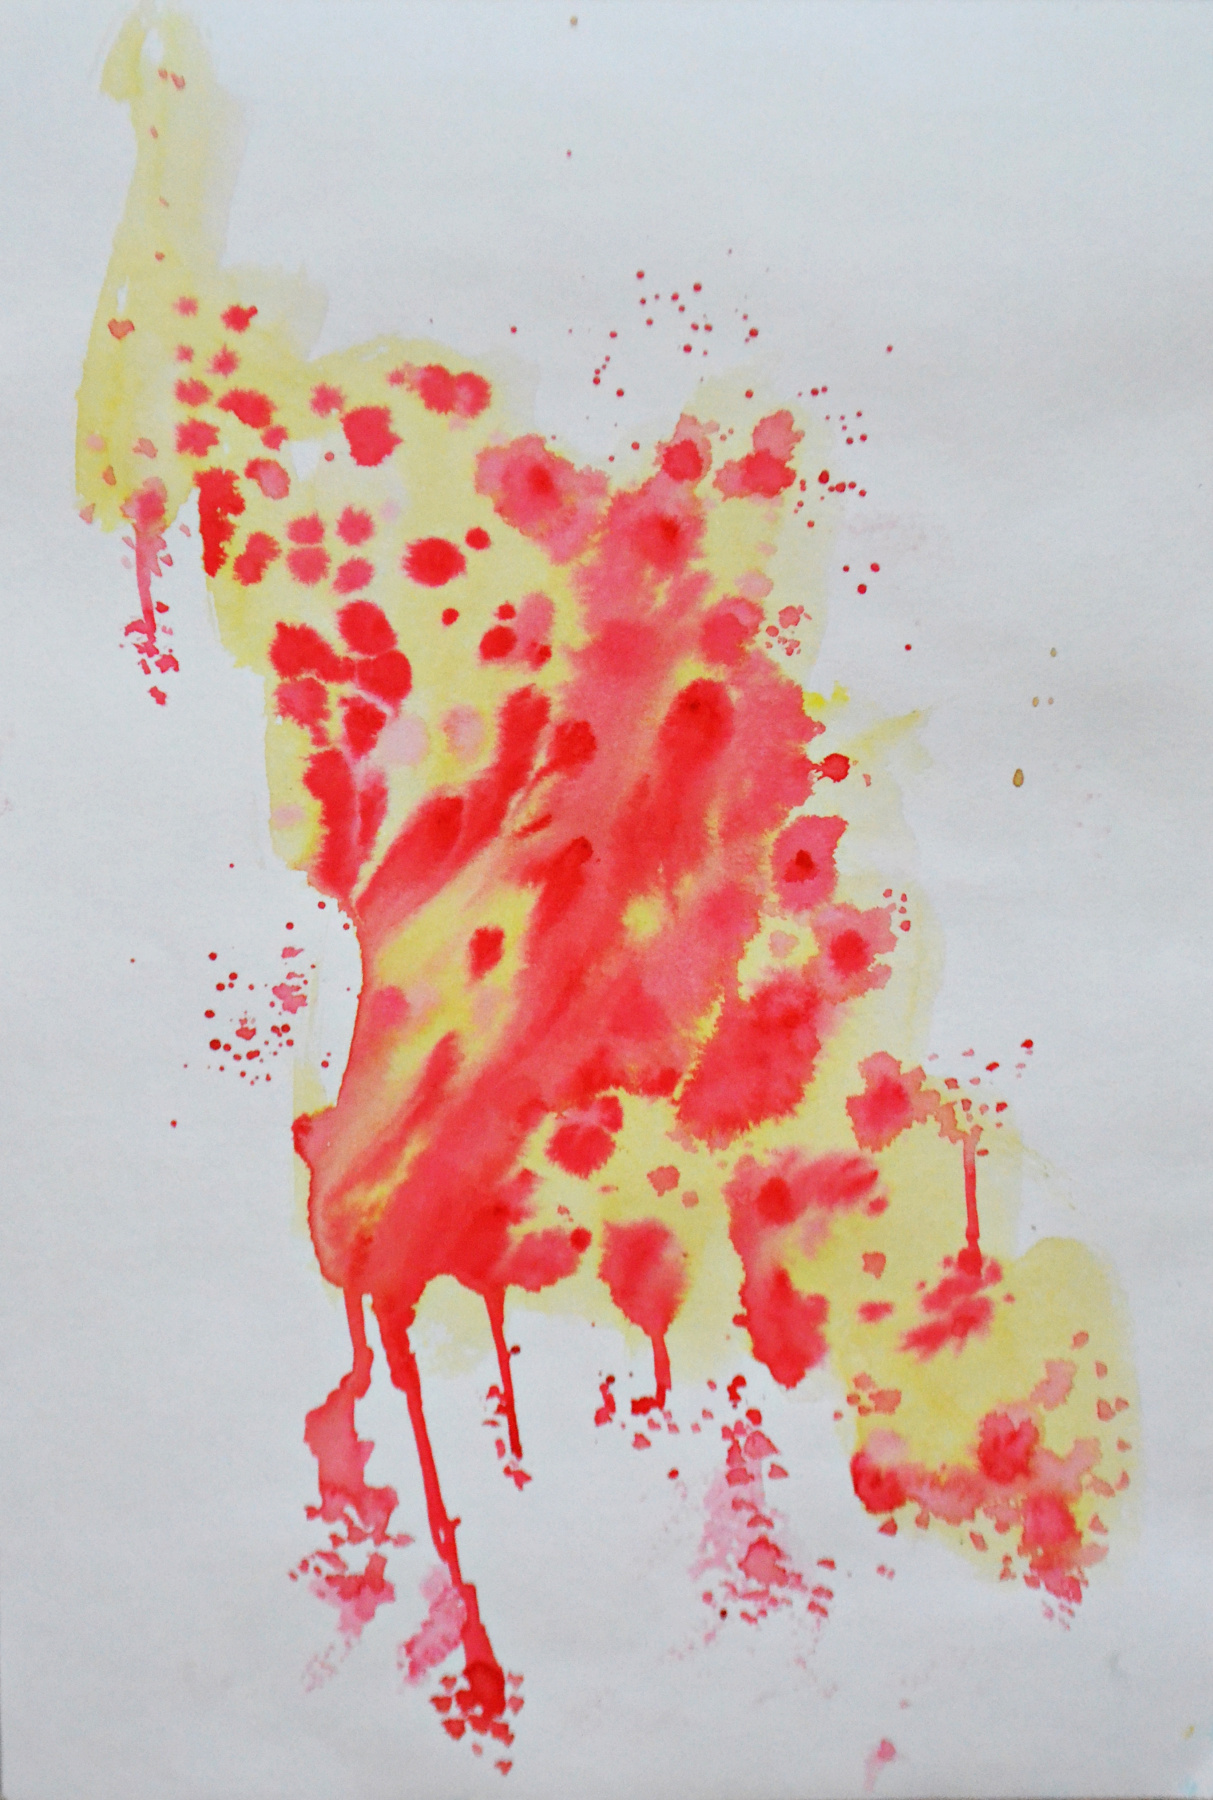 Елена Валерьевна Ведяева. Red yellow abstraction